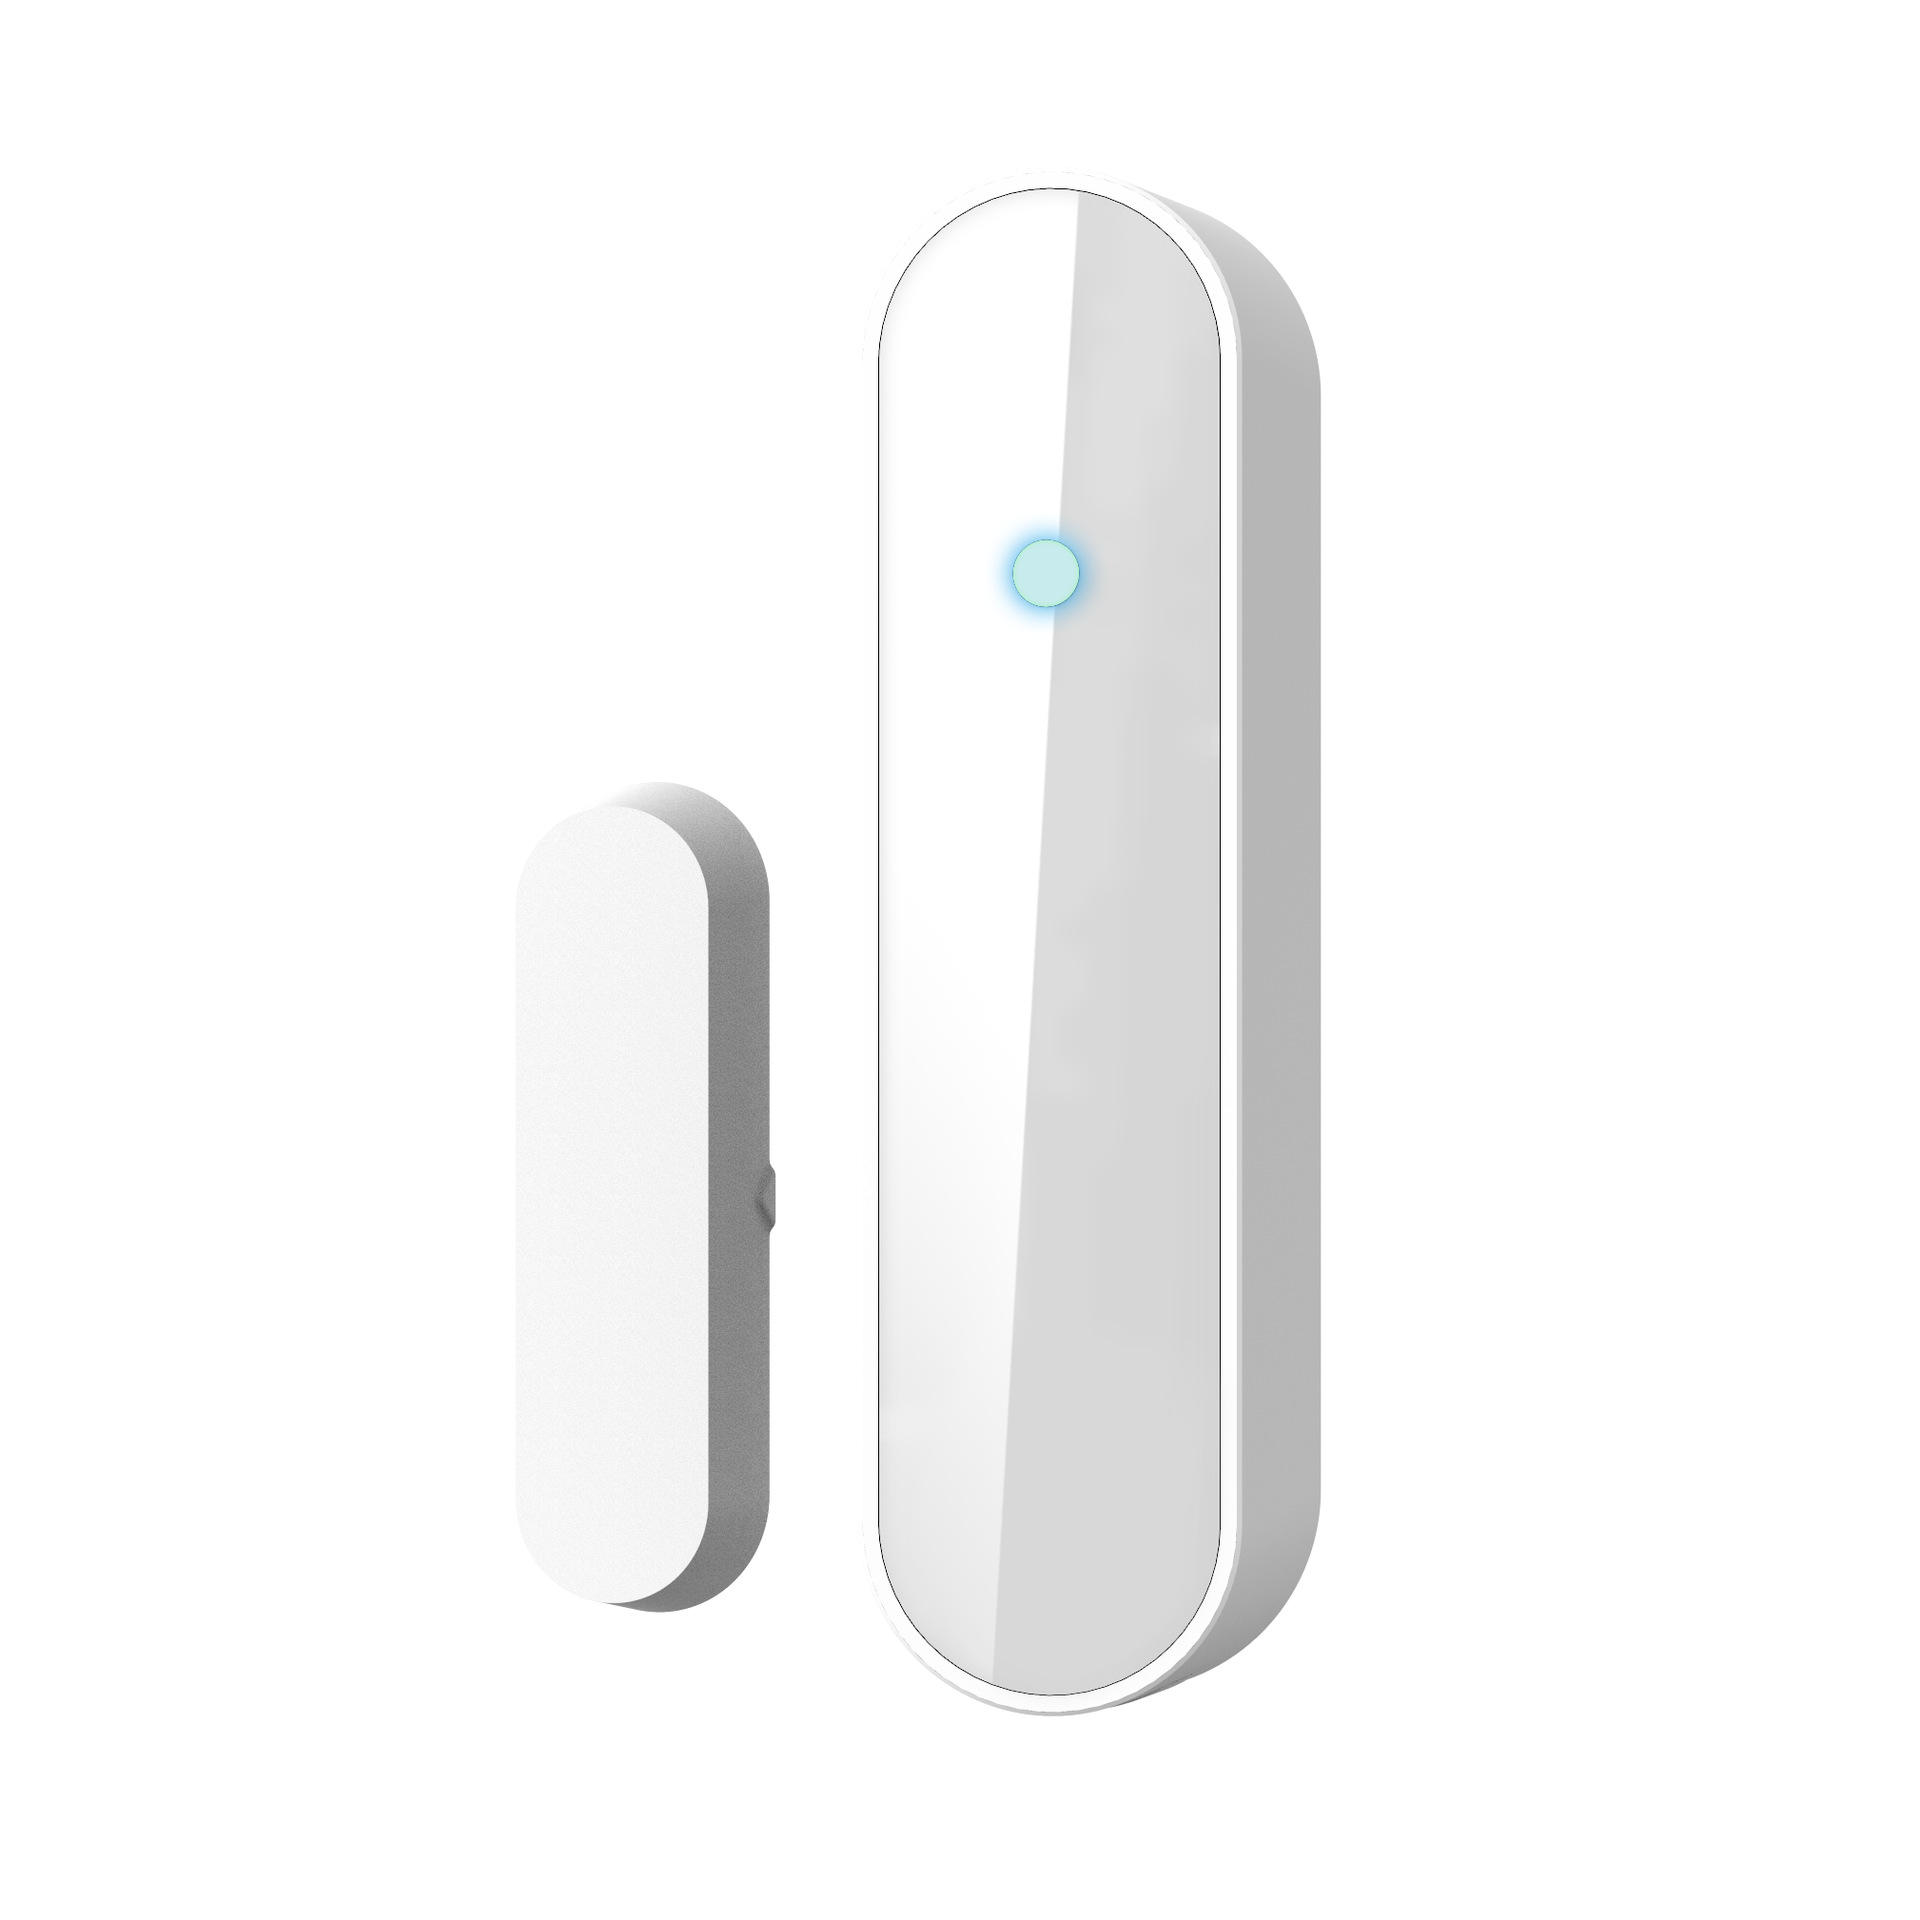 2 4G WIFI Wireless Smart Window Door Sensor Detector for Tuya Smart Home